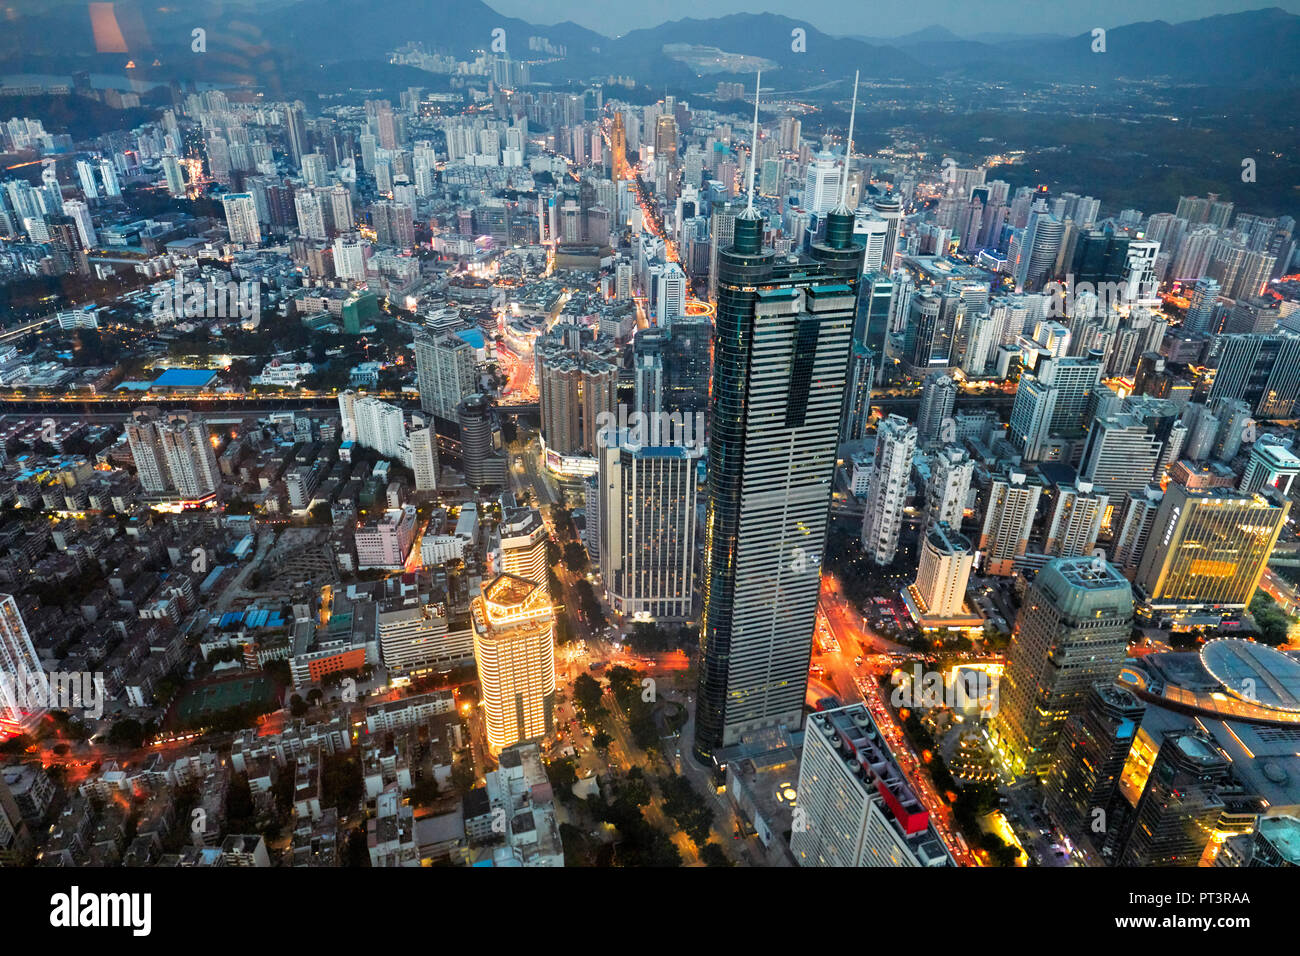 Aerial city view from the top of KK100 (Kingkey 100) skyscraper at dusk. Luohu District, Shenzhen city, Guangdong Province, China. - Stock Image